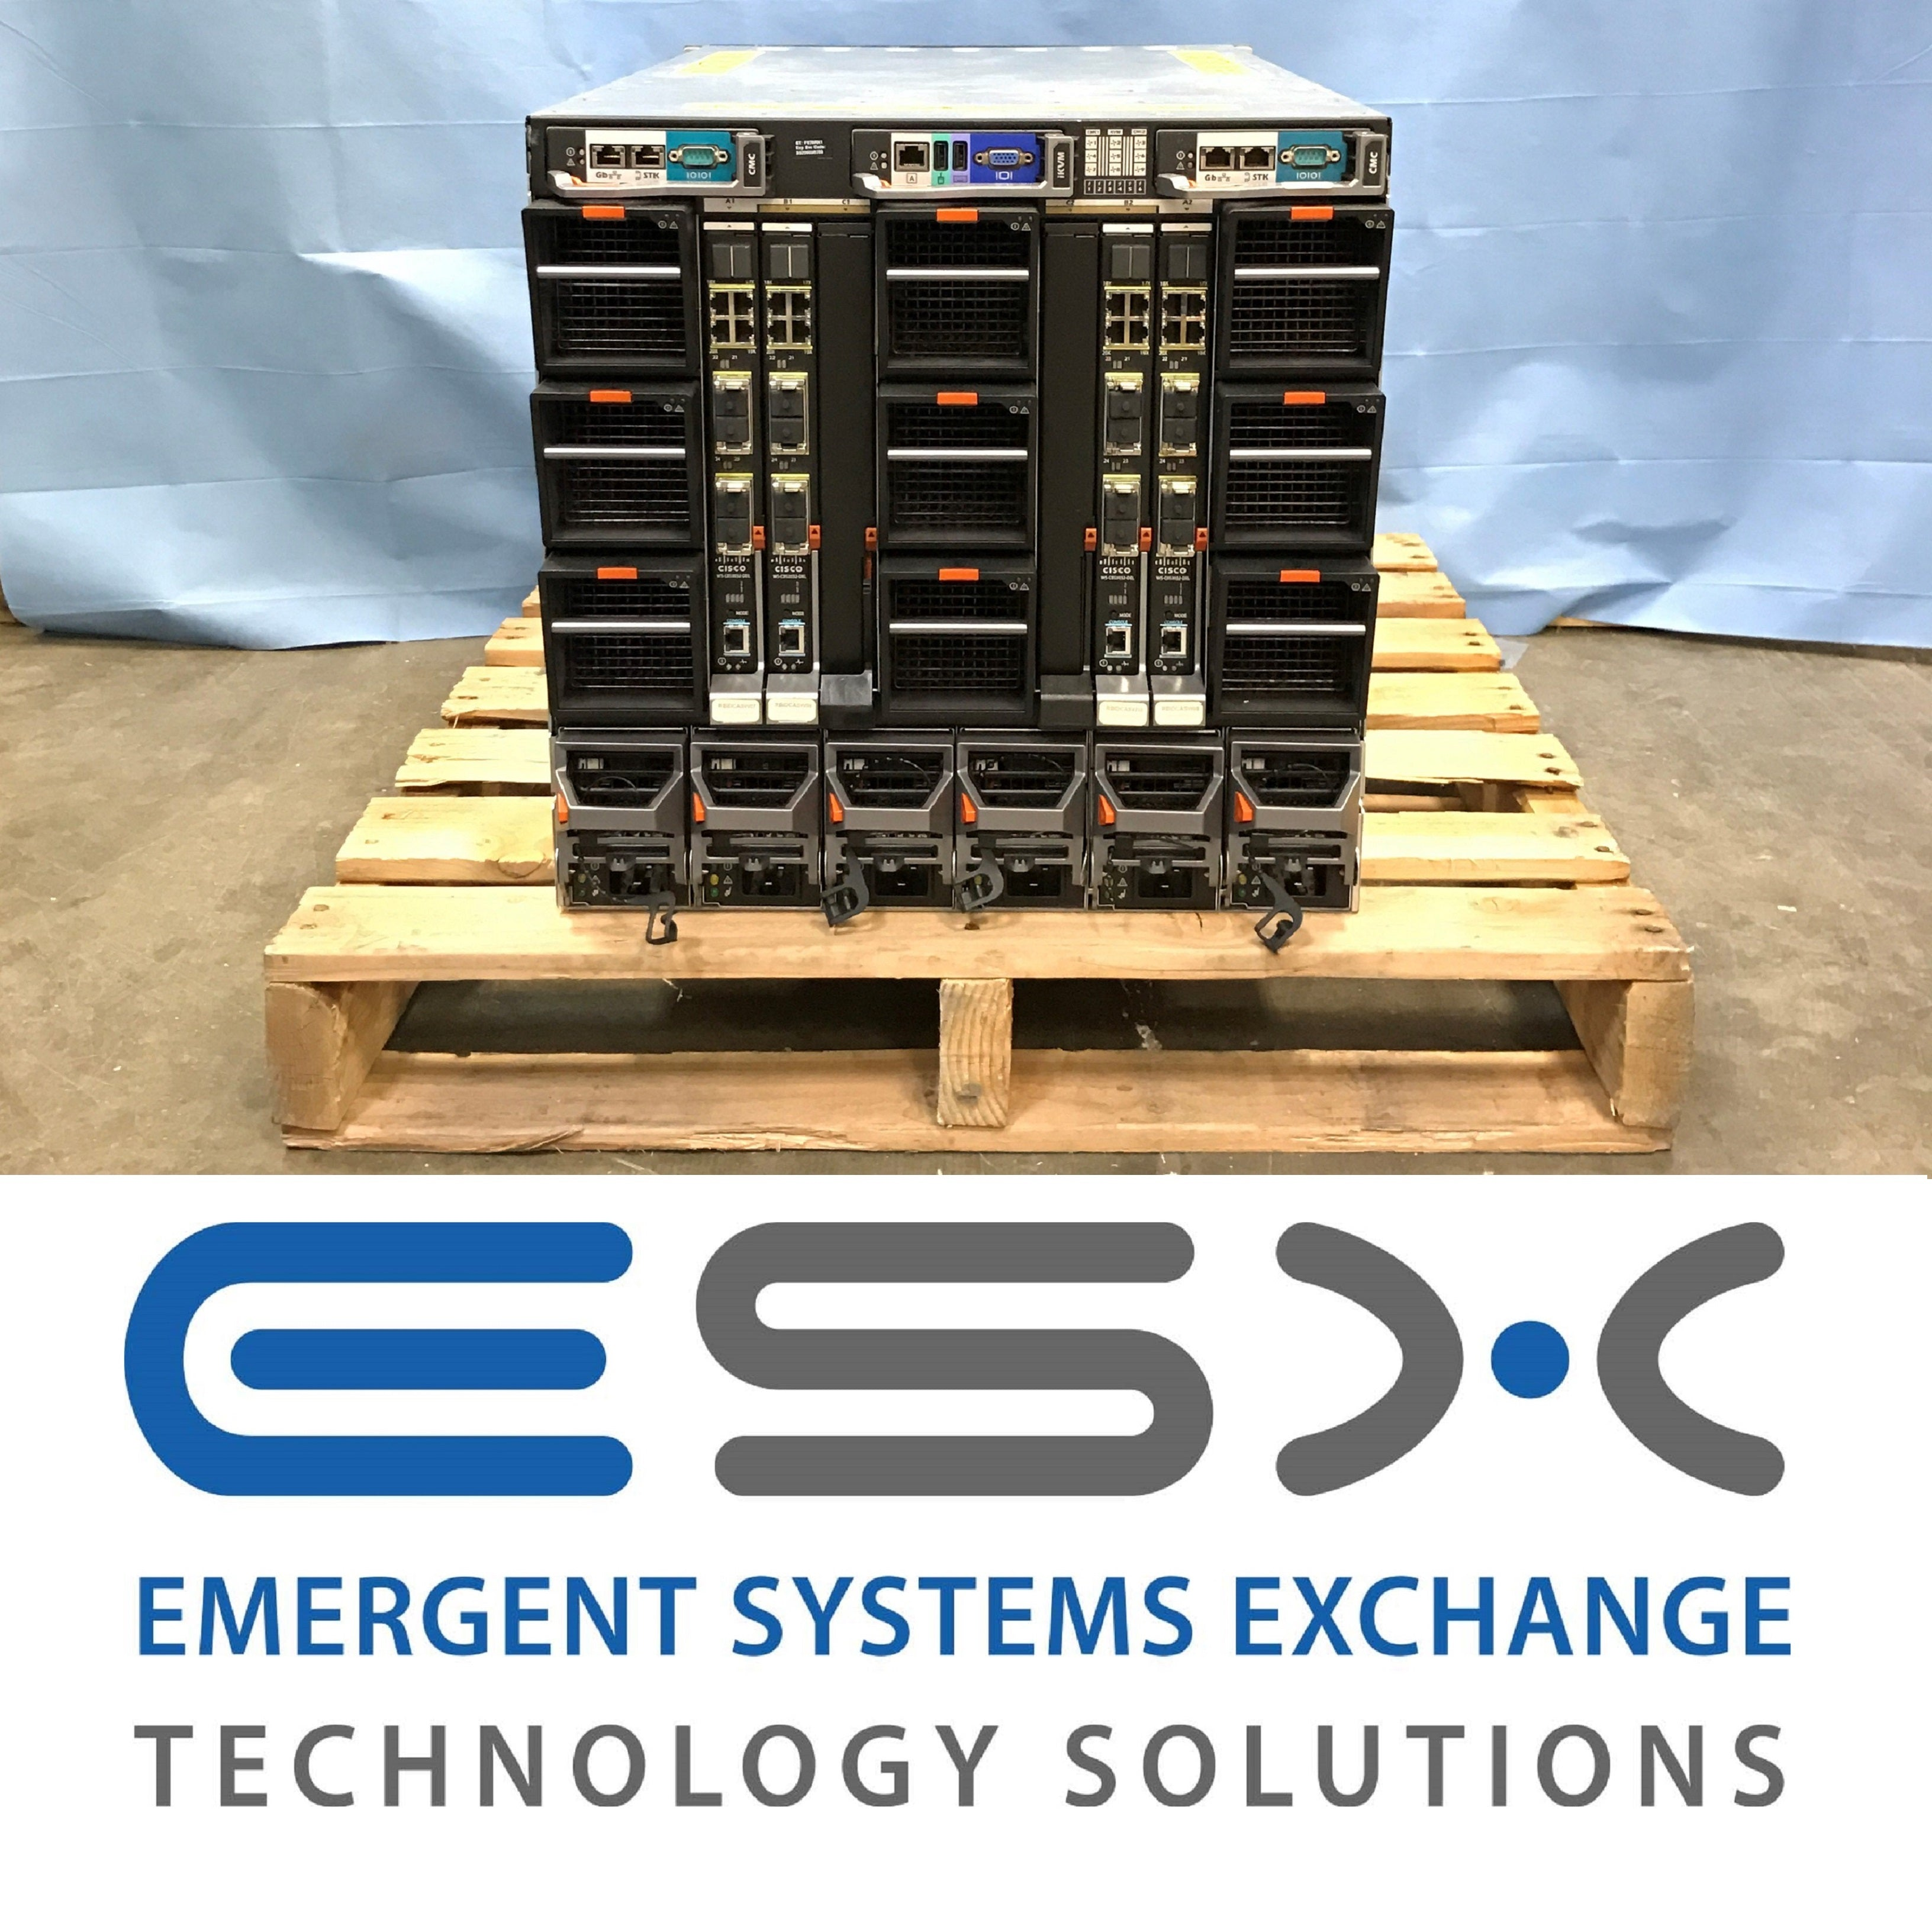 Dell PowerEdge M1000e Blade Enclosure w/ 10x M600 Blade Servers 2x E5450 32GB